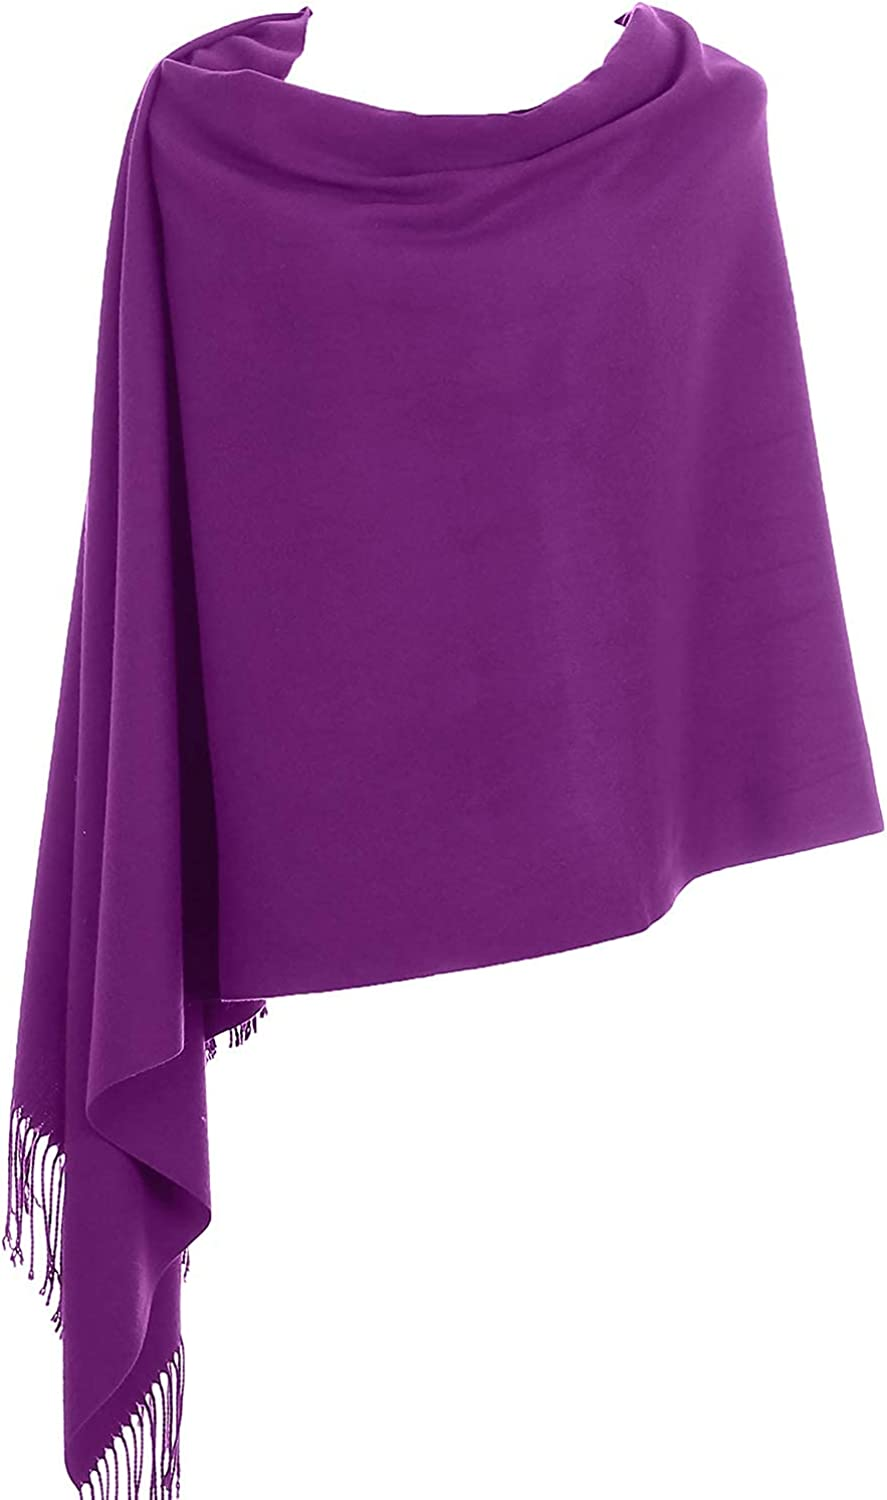 Pashmina Max 53% OFF Shawl Scarf for Women All Soft Weather Wear Max 41% OFF Wrap Large